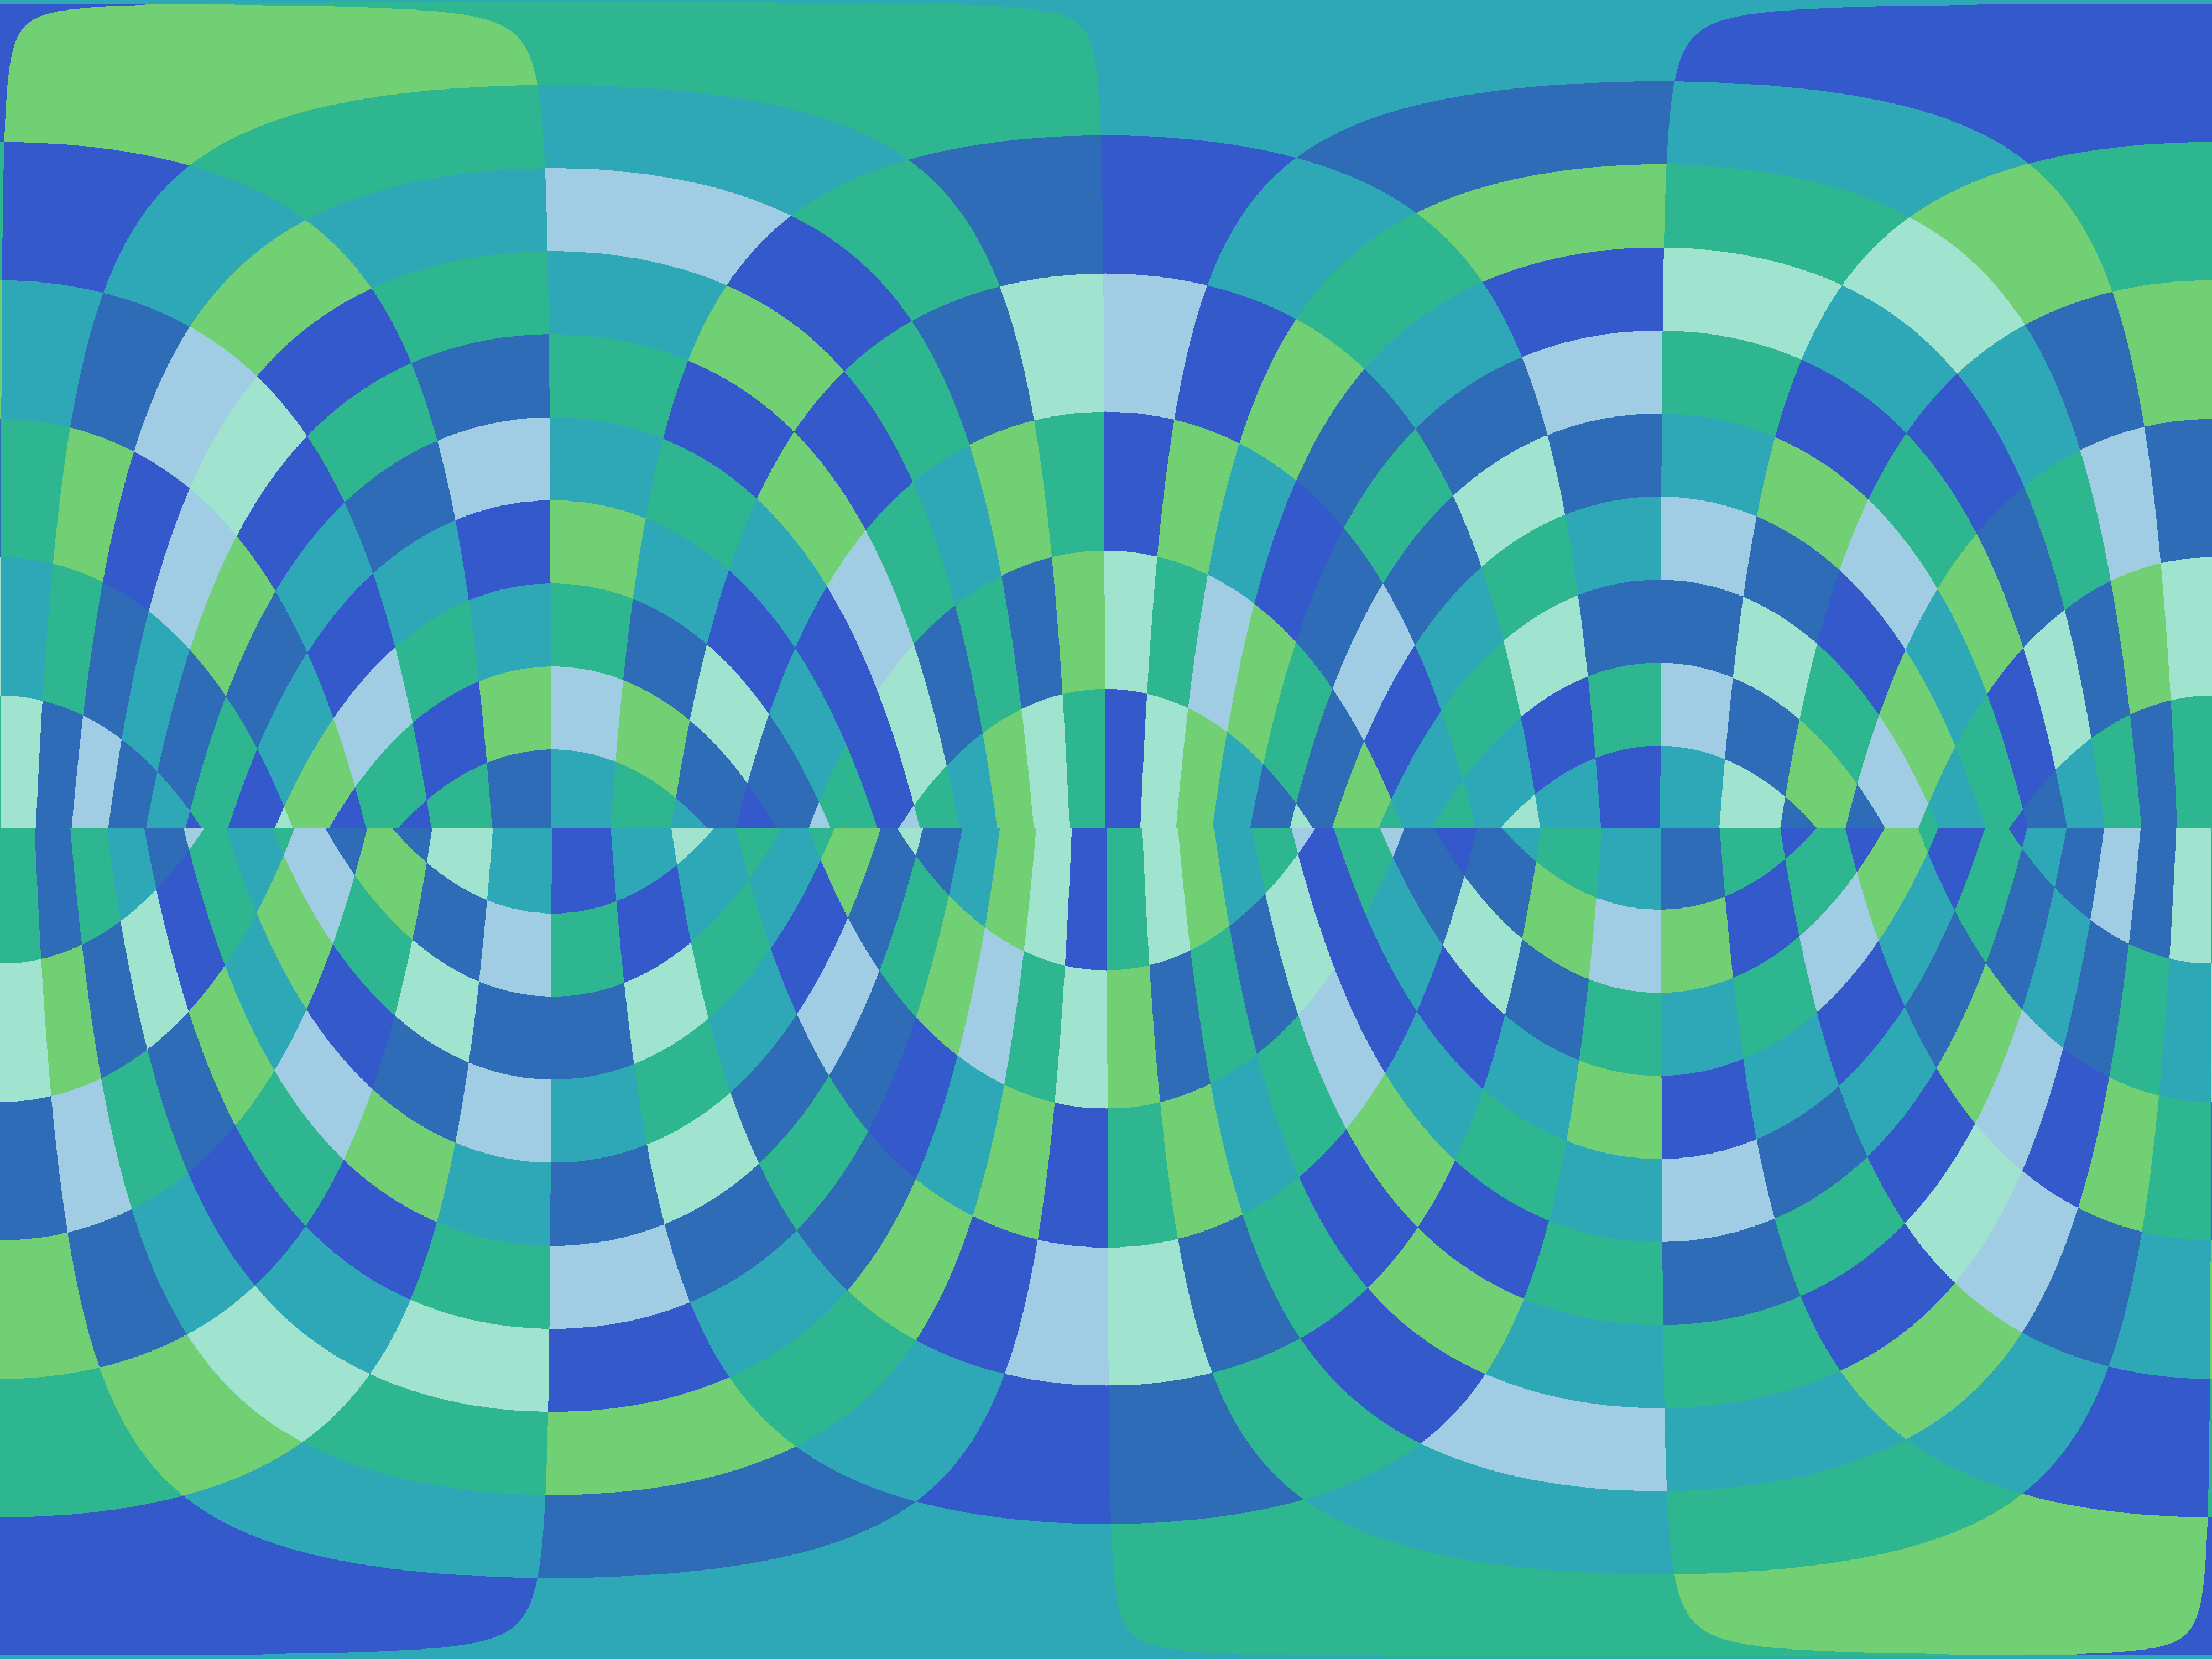 a background of green and blue coloured squares distorted into rounded rectangles